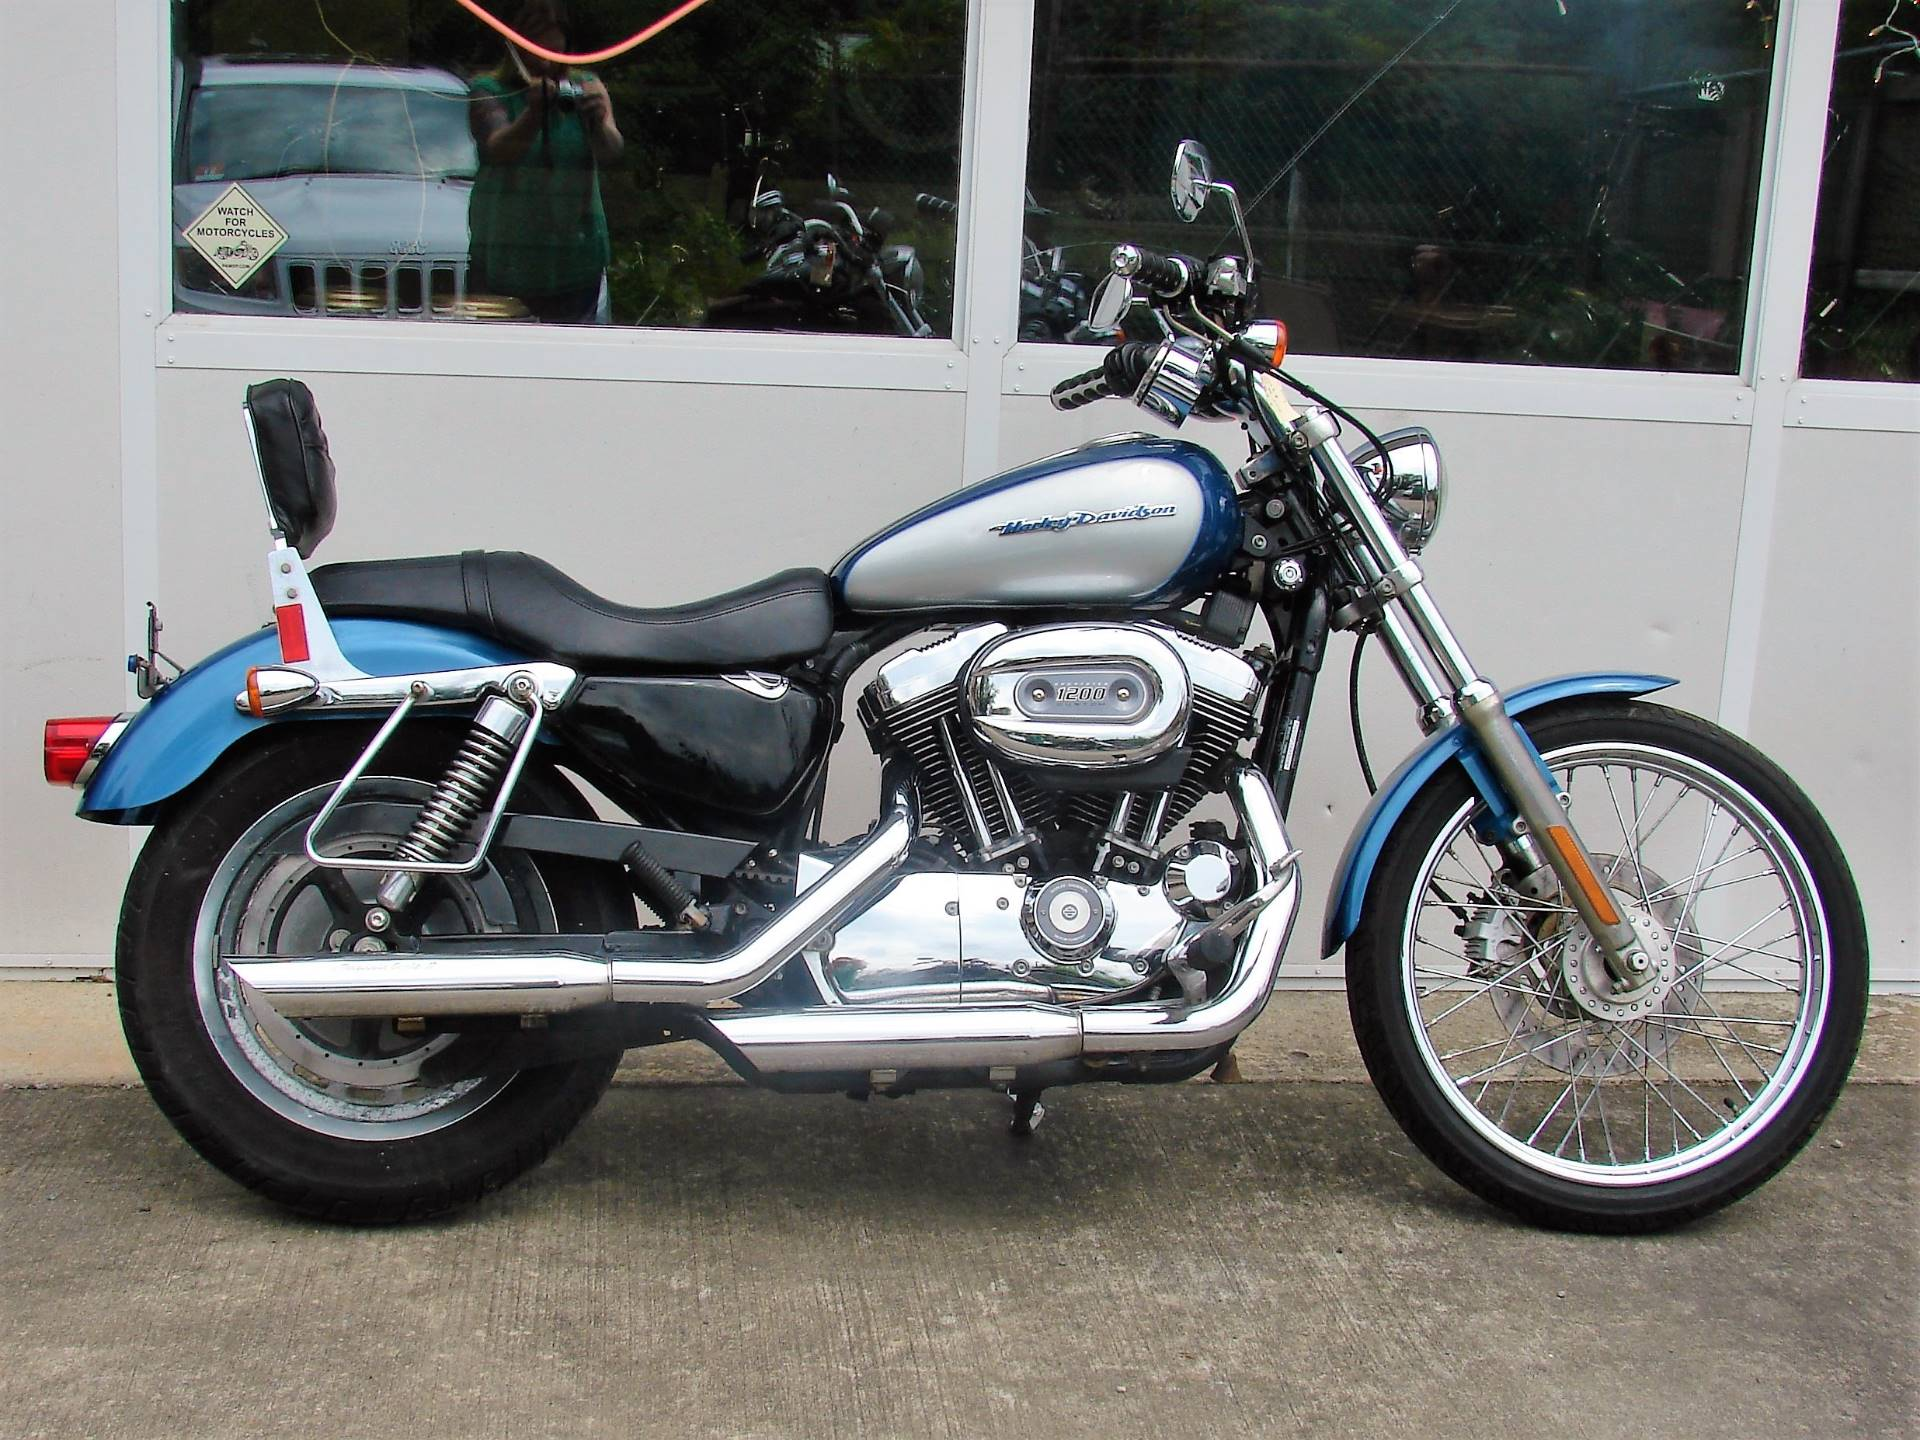 2005 Harley-Davidson Sportster® XL 1200 Custom in Williamstown, New Jersey - Photo 1